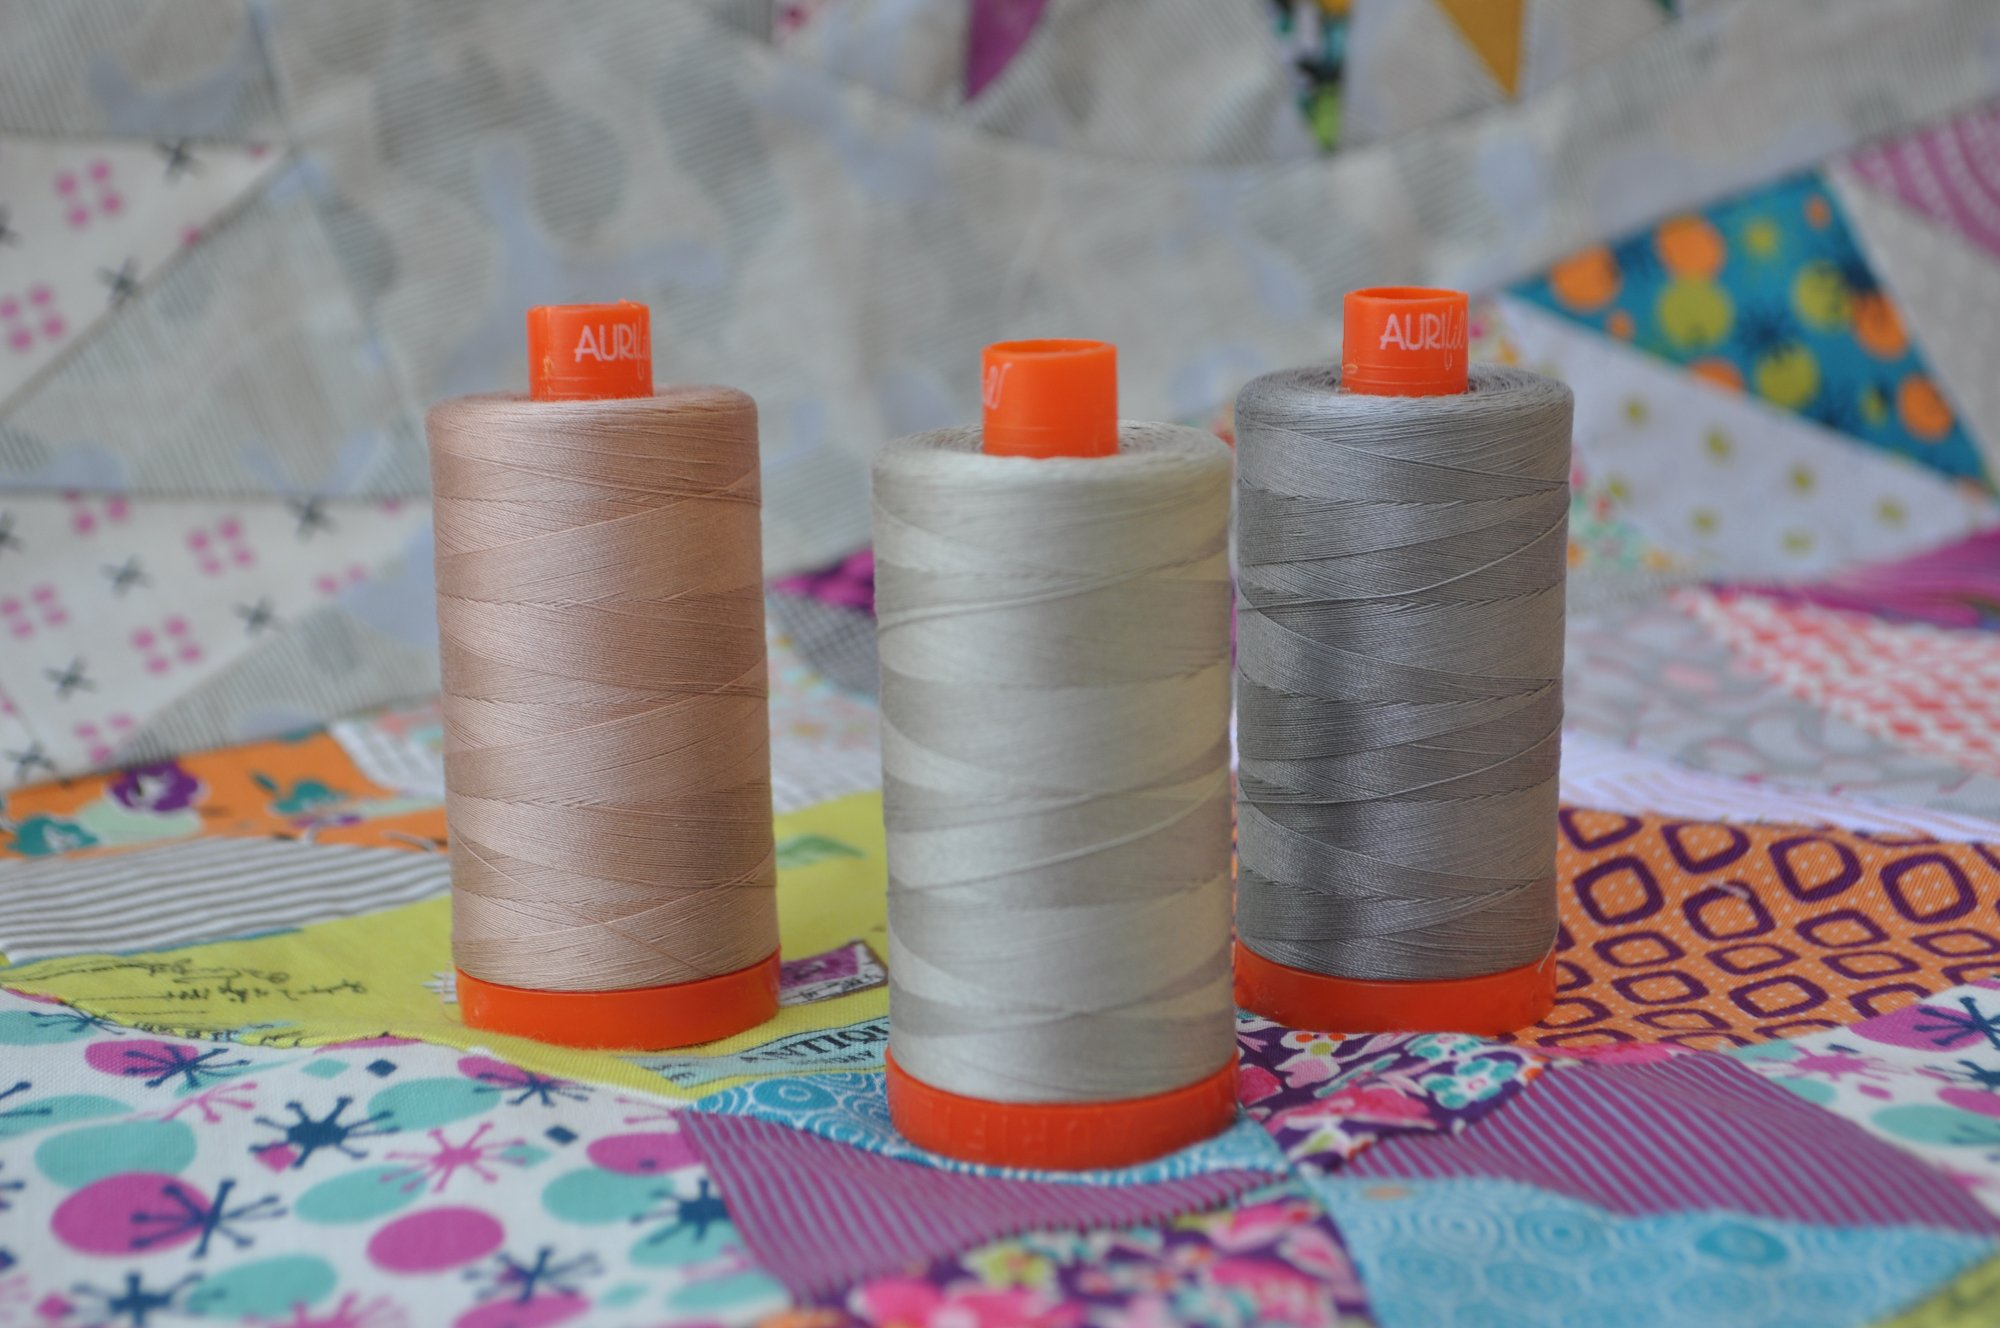 Aurifil Golden Days 50wt Thread Set (includes shipping)